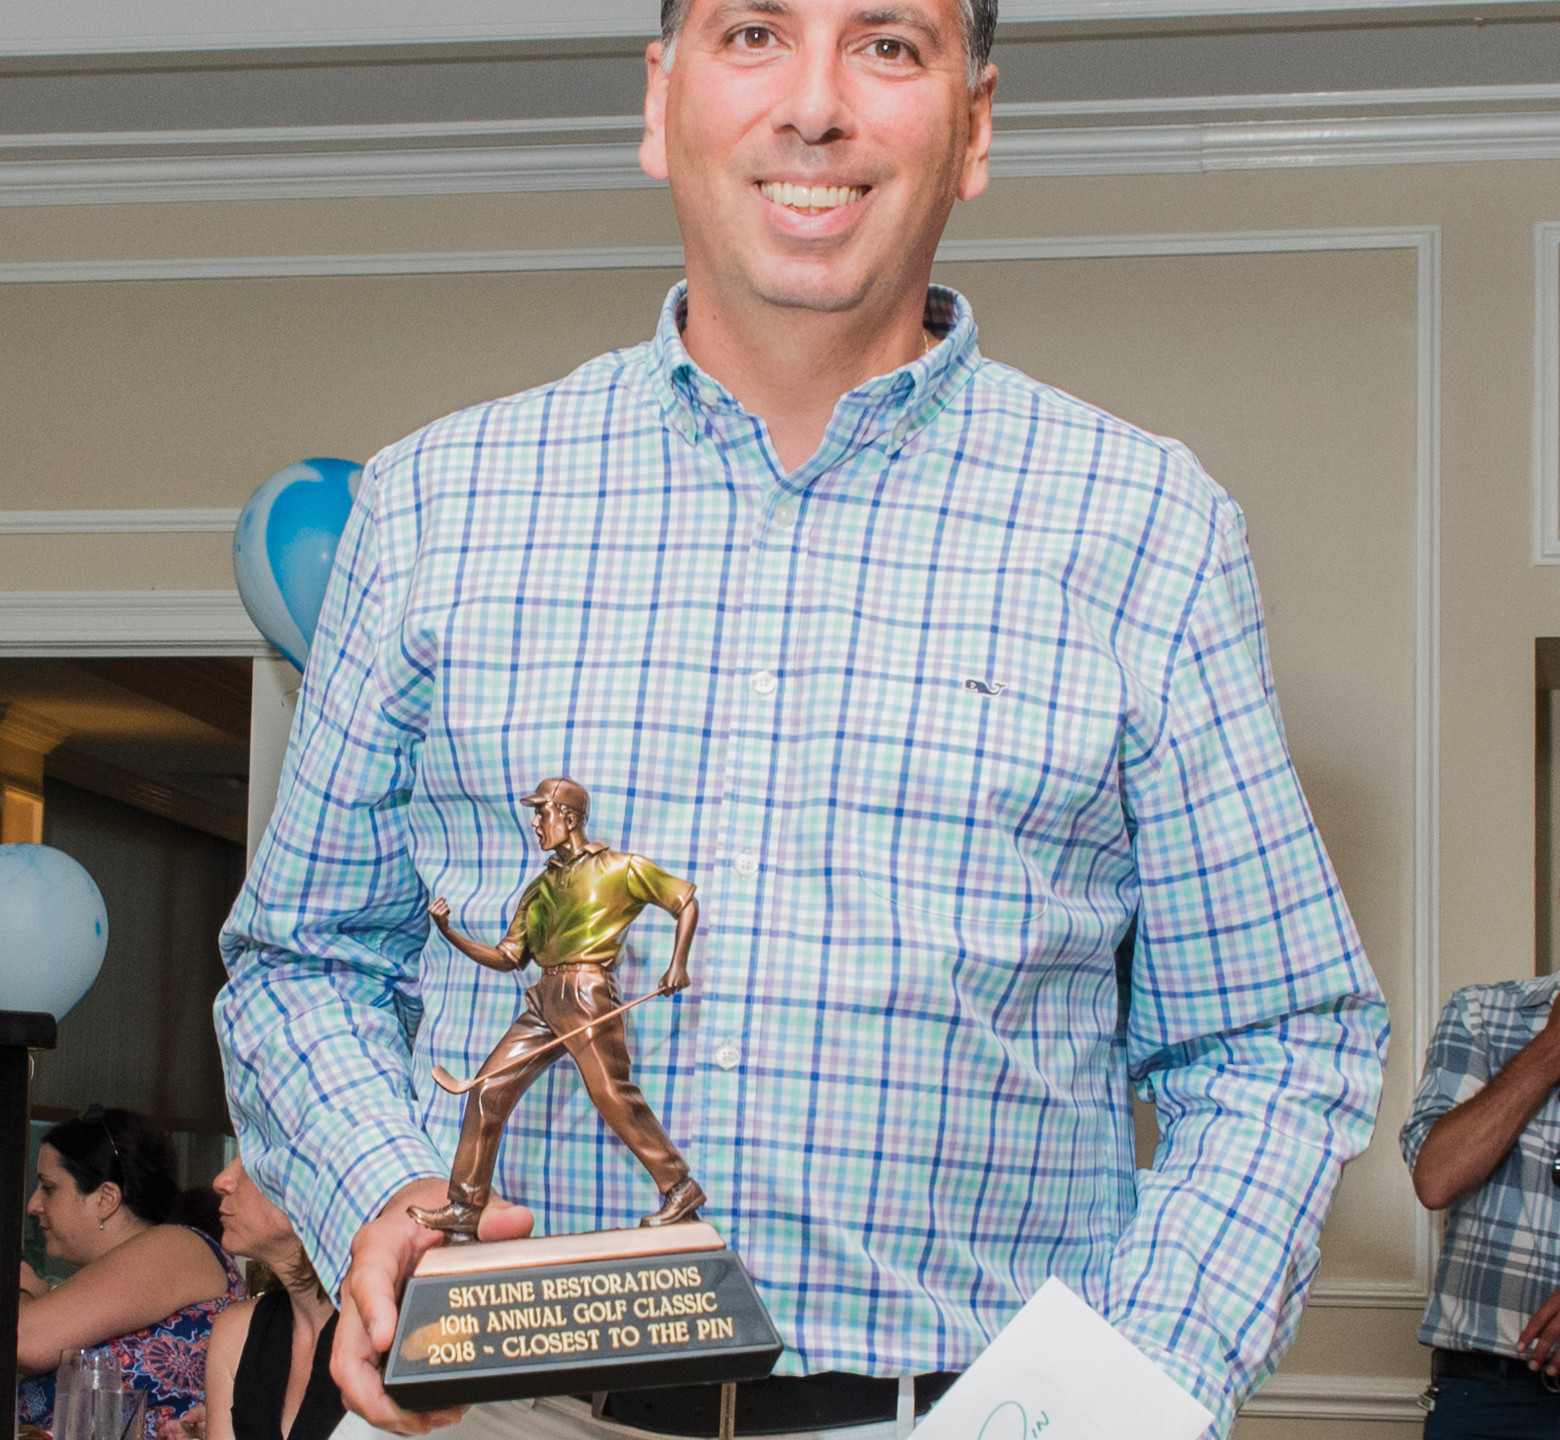 Peter Gerazounis, P.E., with MGE Engineering, accepts award for closest to the pin at Skyline's 10th Annual Charitable Golf Classic.